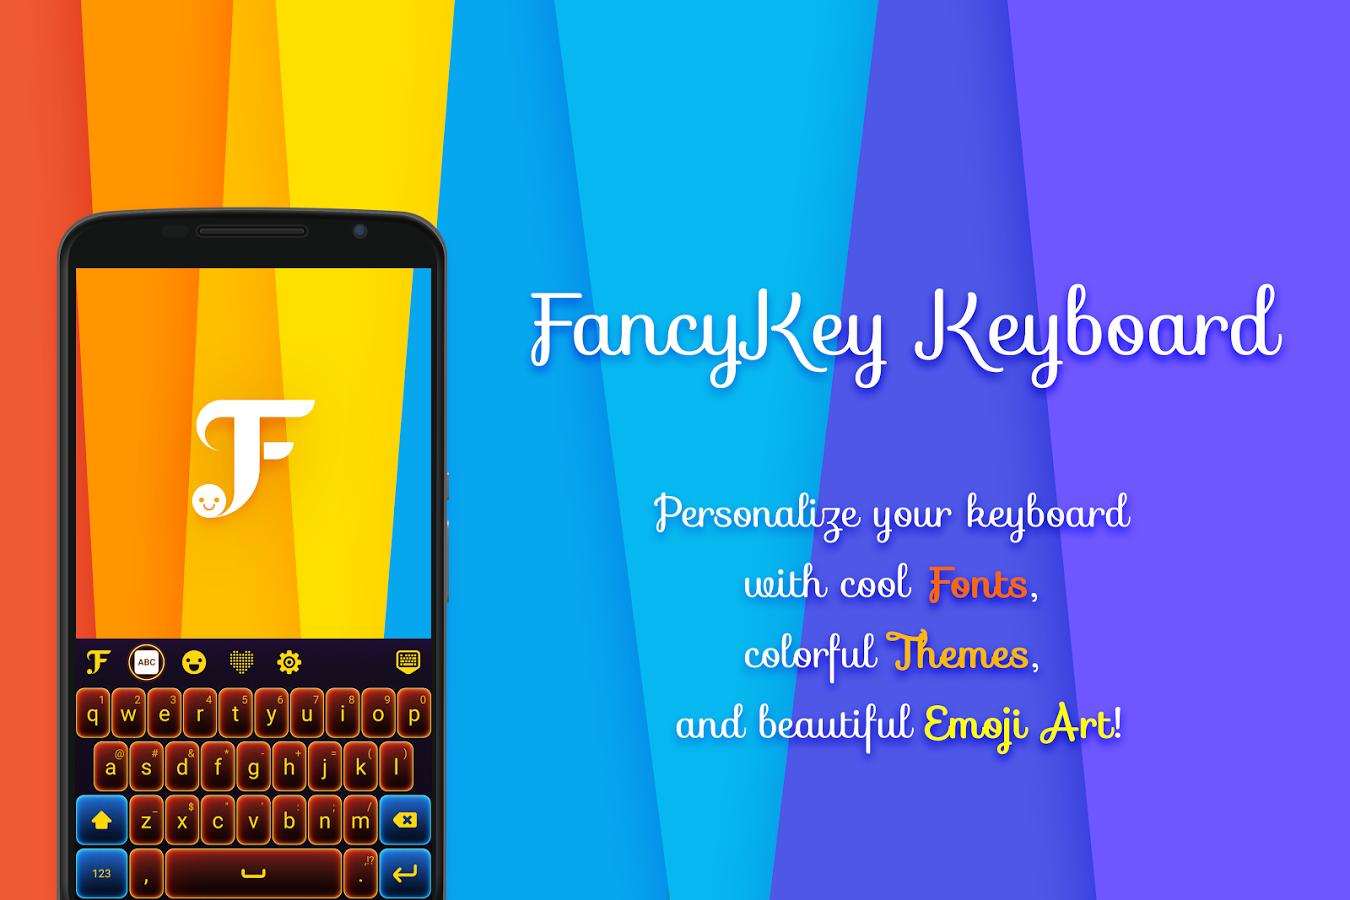 FancyKey-Keyboard-Cool-Fonts